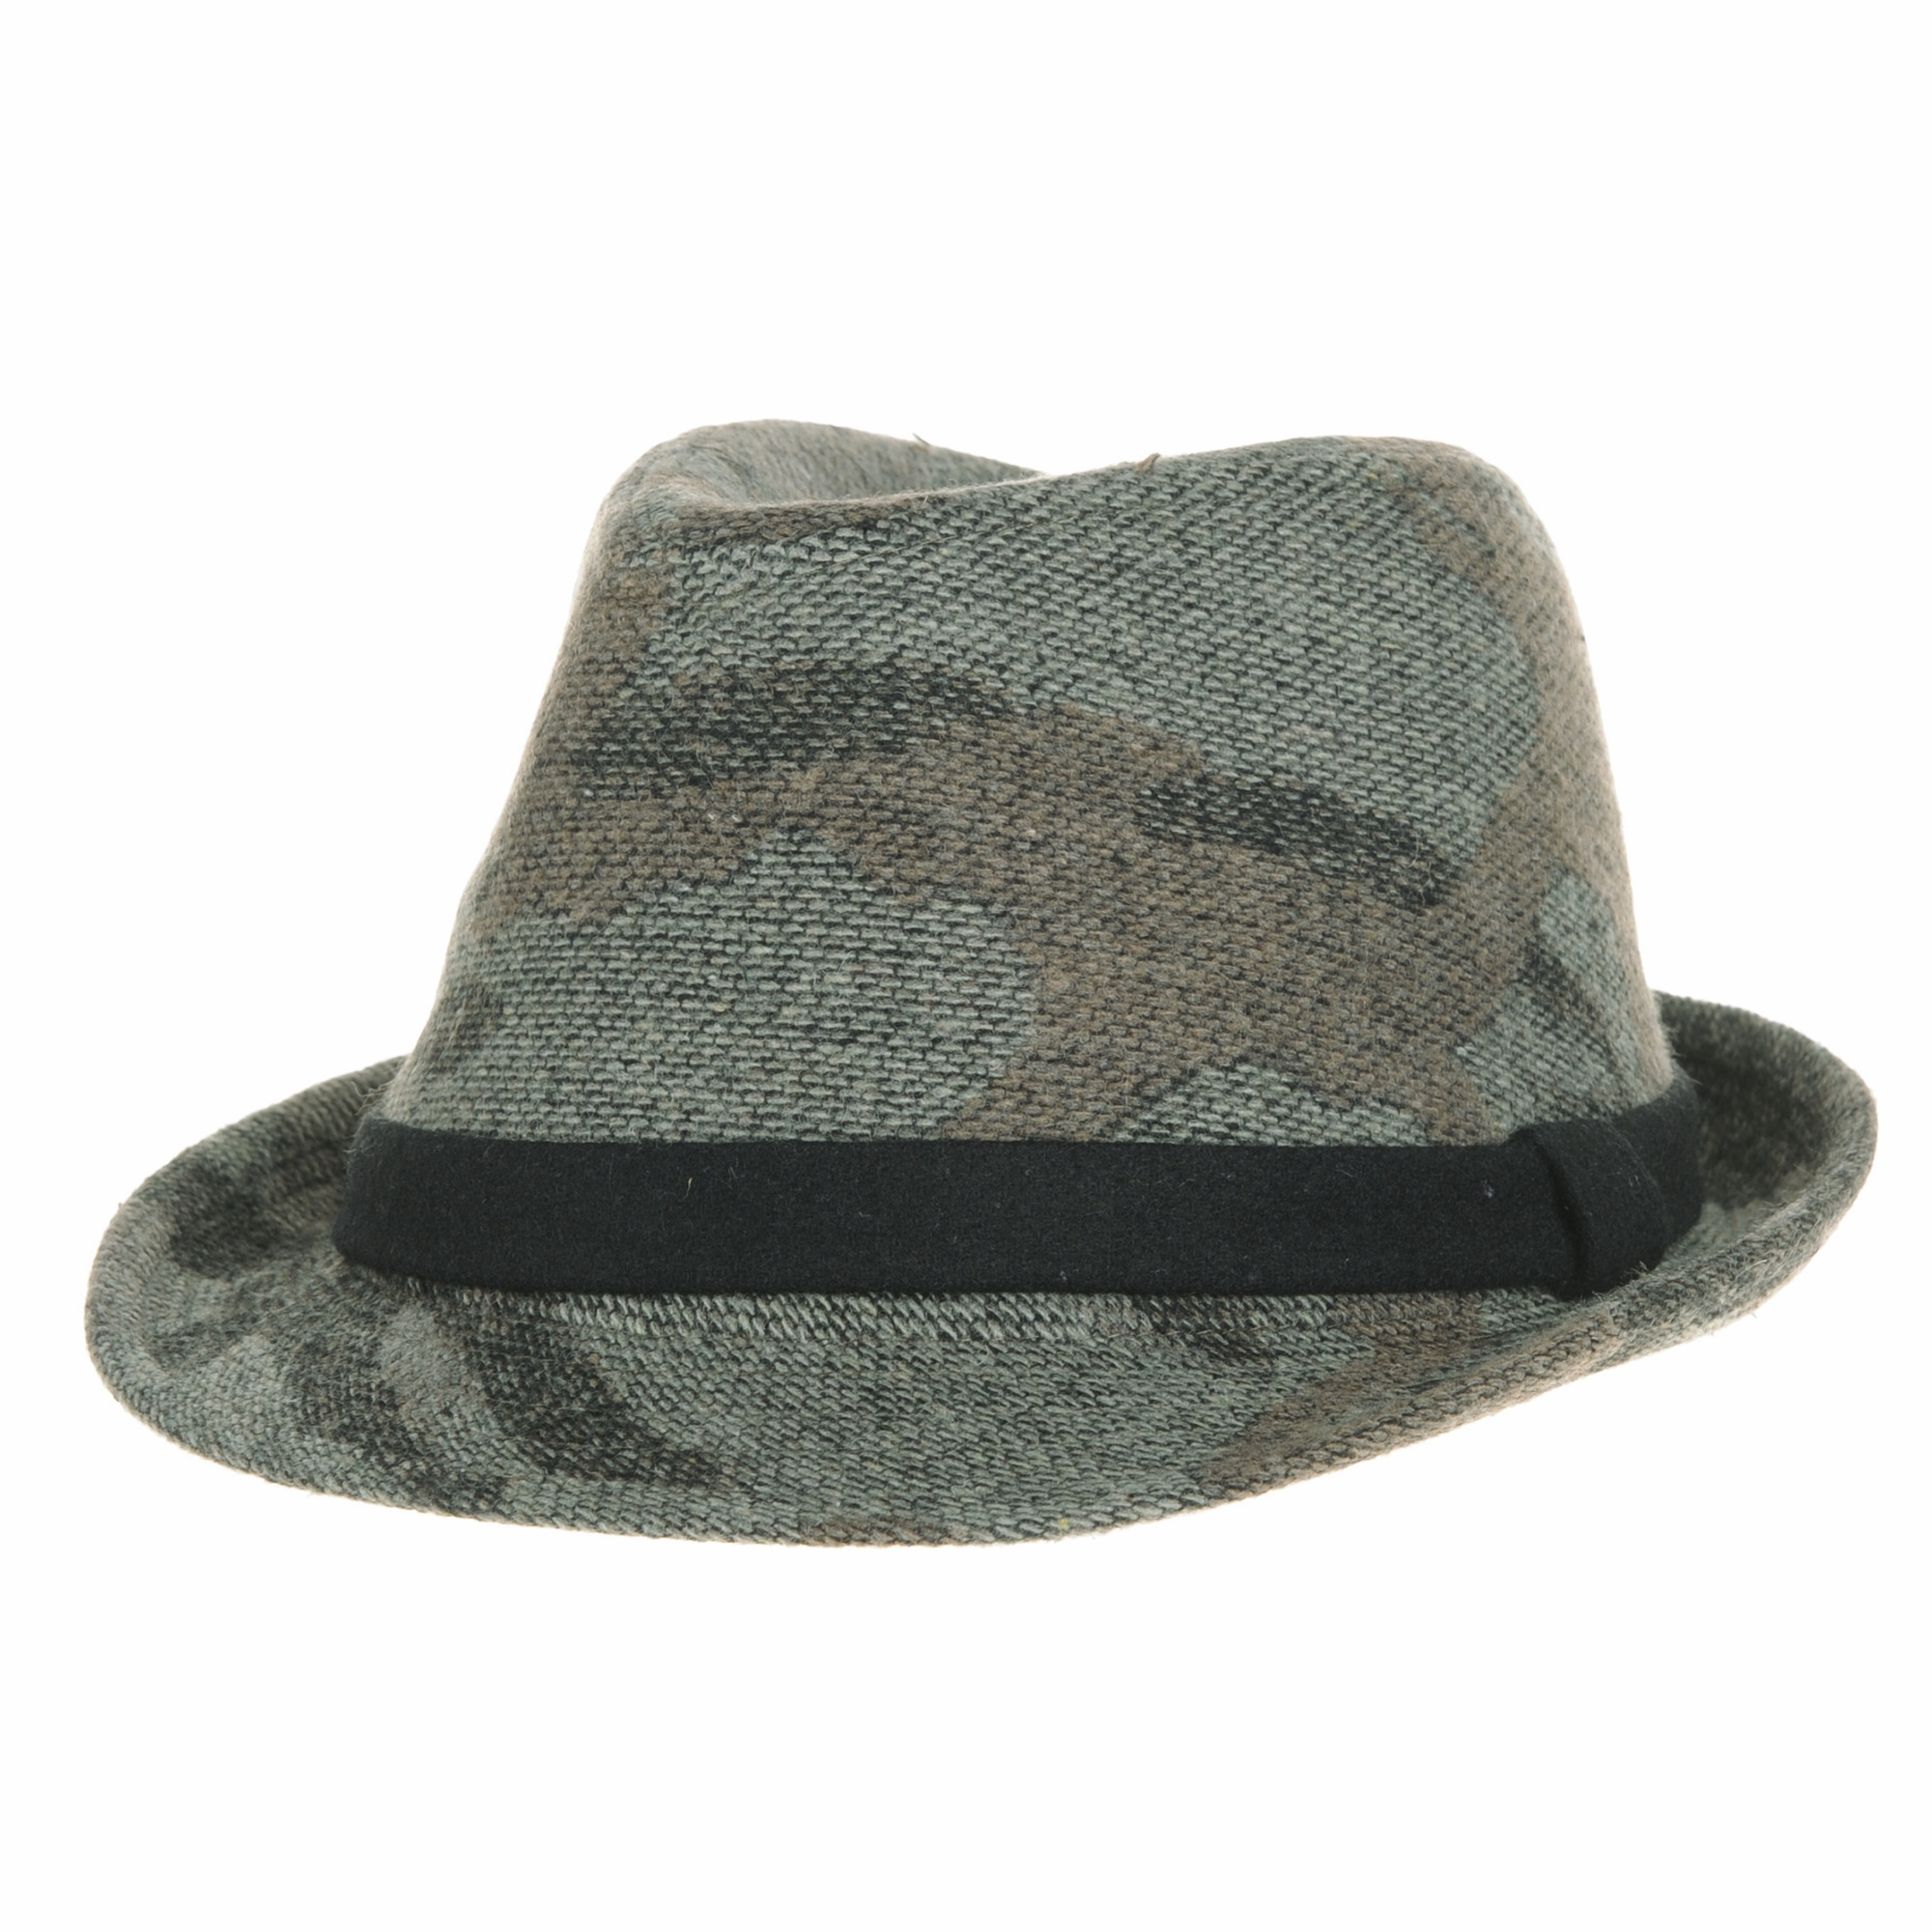 WITHMOONS Camouflage Fedora Hat Wool Felt Trilby Banded SL6450